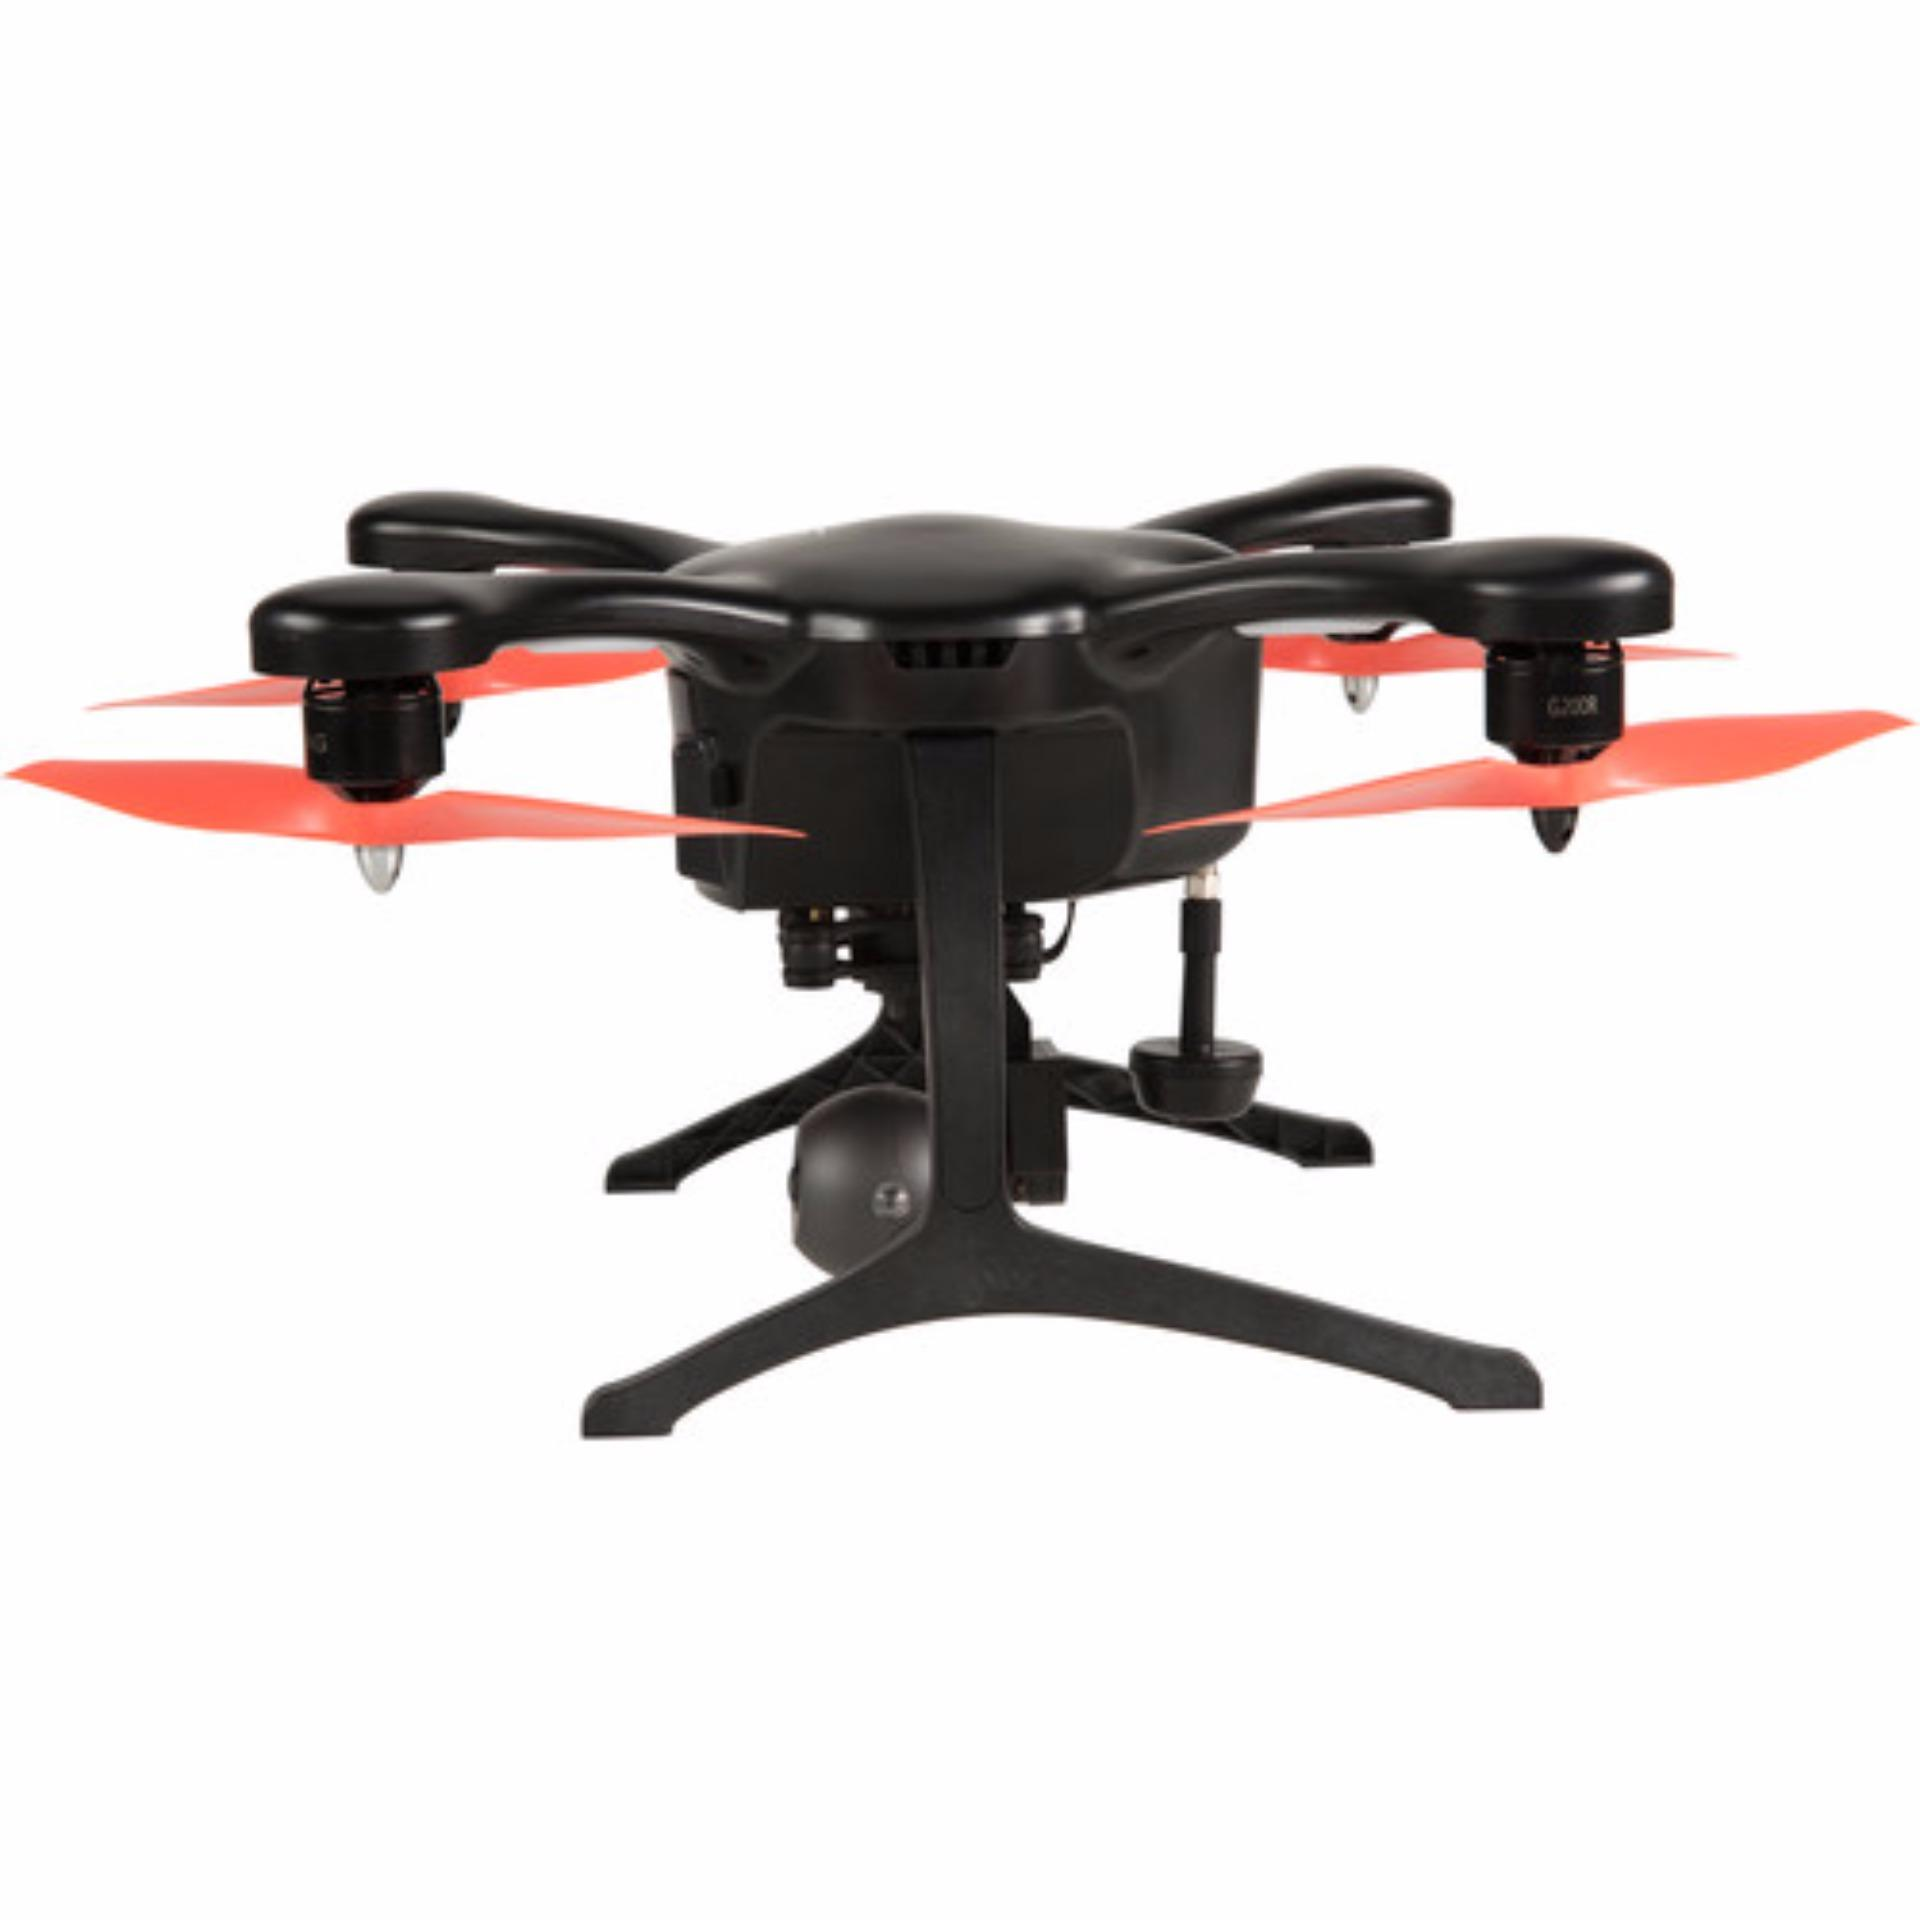 Ehang GHOSTDRONE 2.0 VR (iOS, Black)(FREE 2 Smart Batteries)